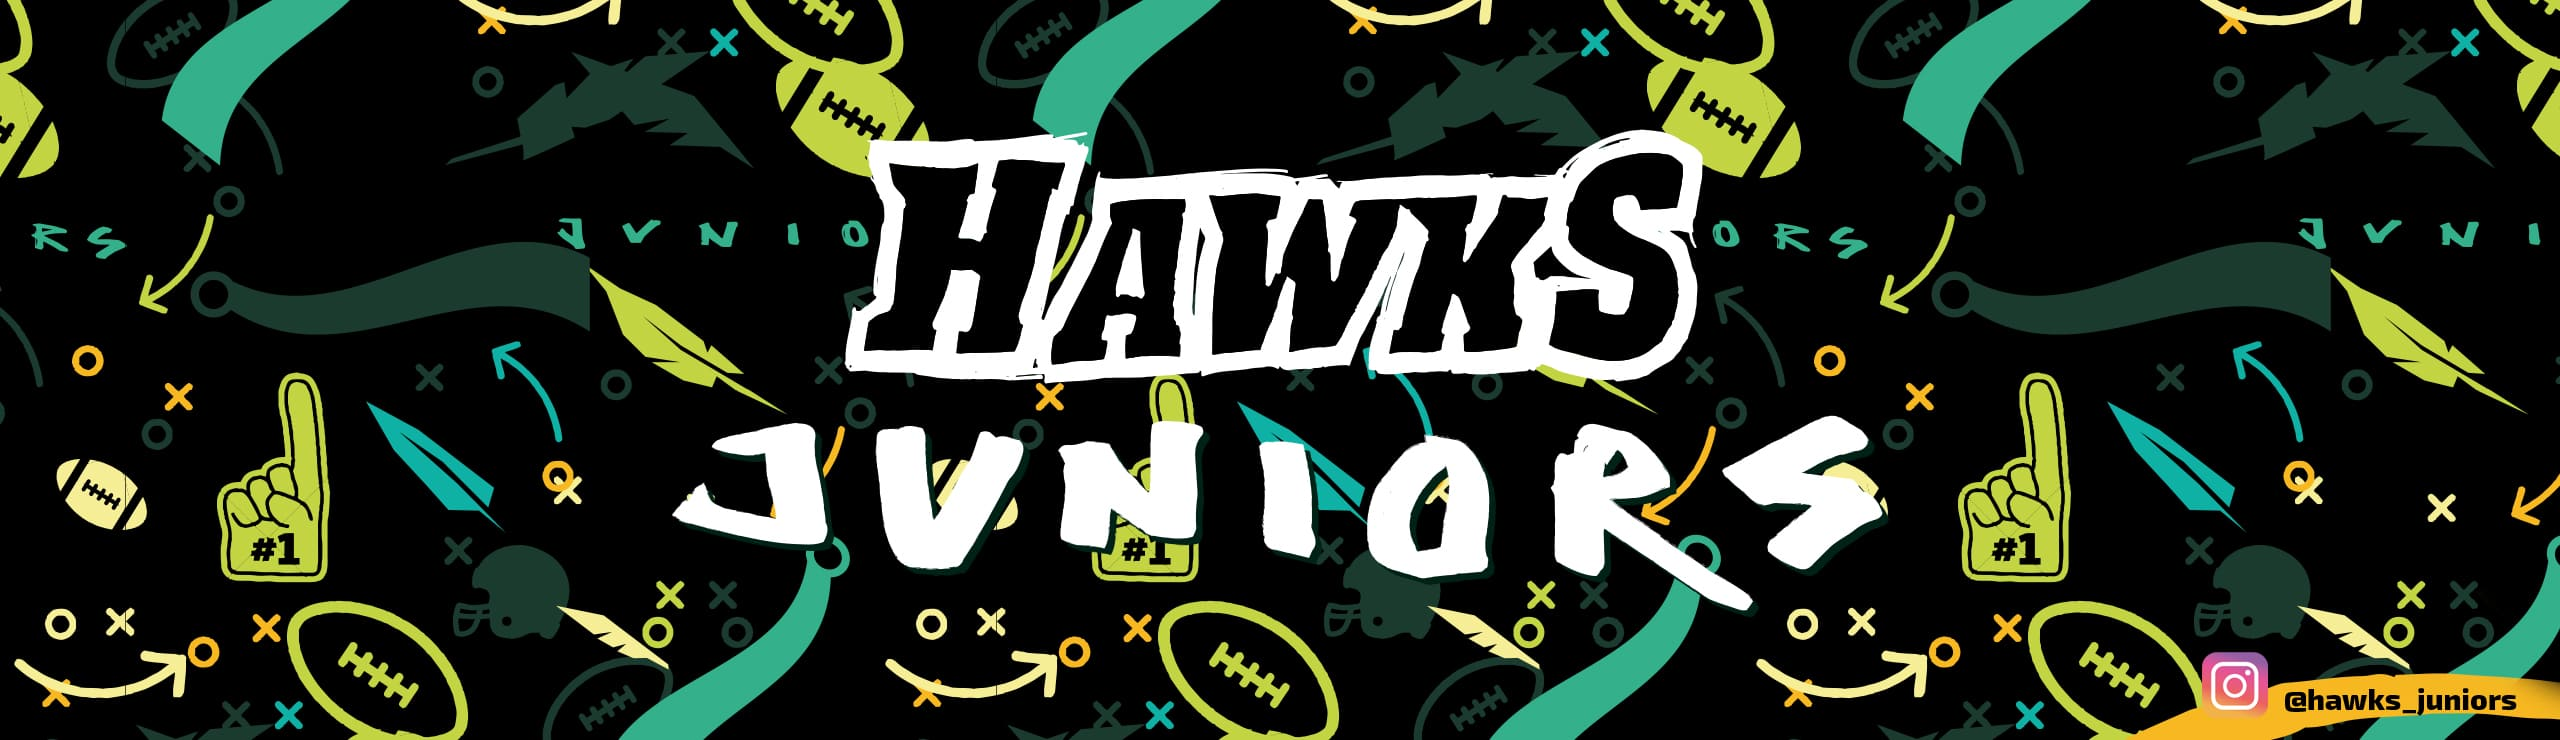 Hawks juniors u16 Flag